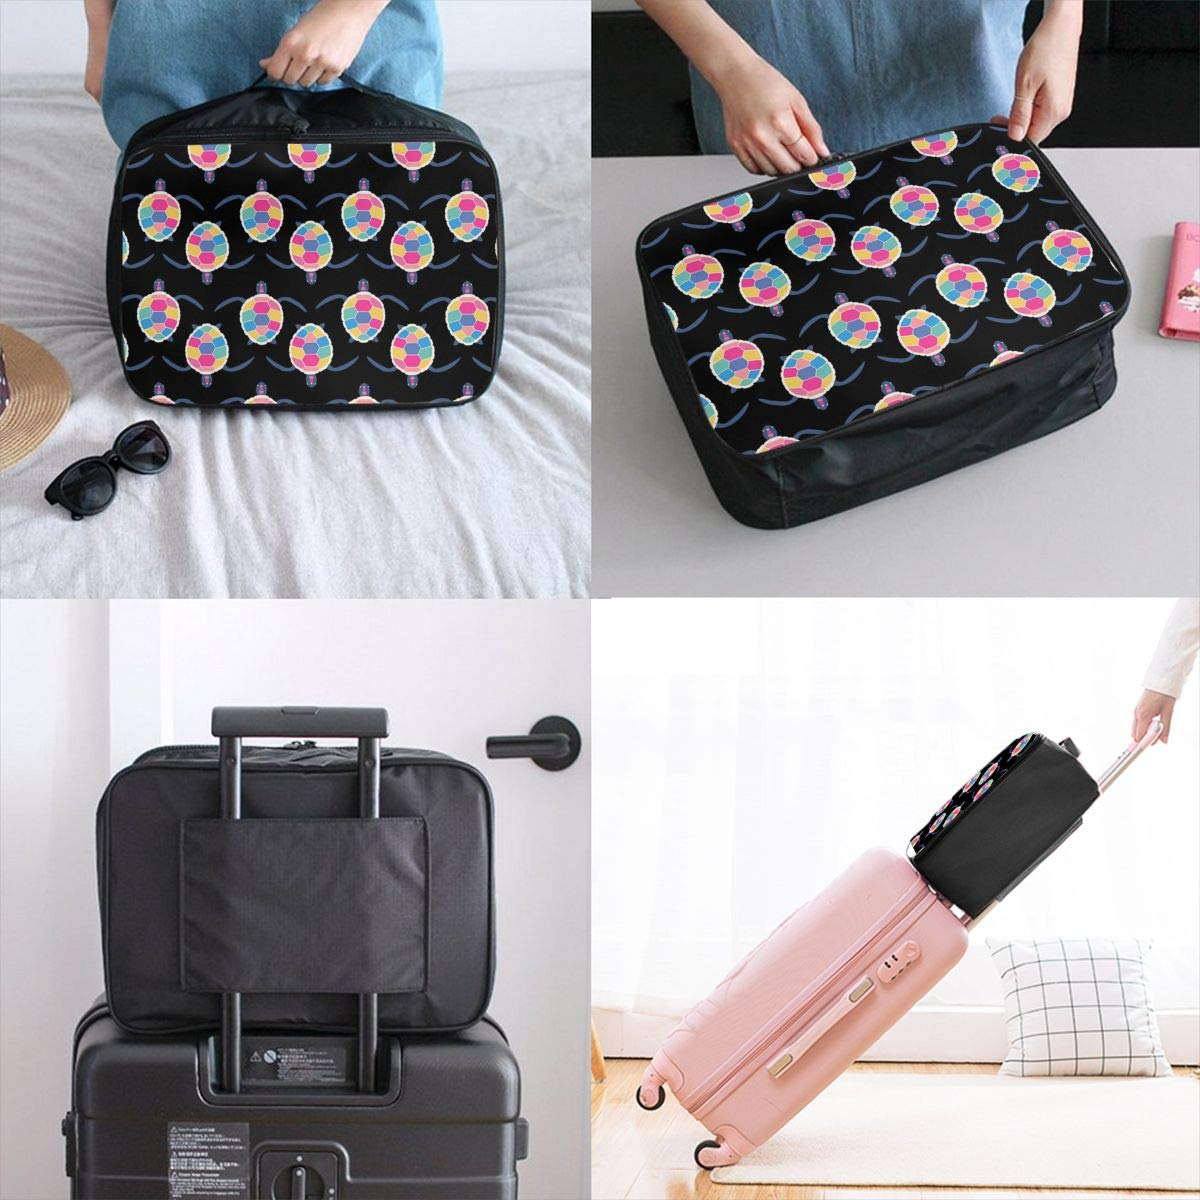 ADGAI Cute Multicolor Seamless Pattern of Stylized Canvas Travel Weekender Bag,Fashion Custom Lightweight Large Capacity Portable Luggage Bag,Suitcase Trolley Bag